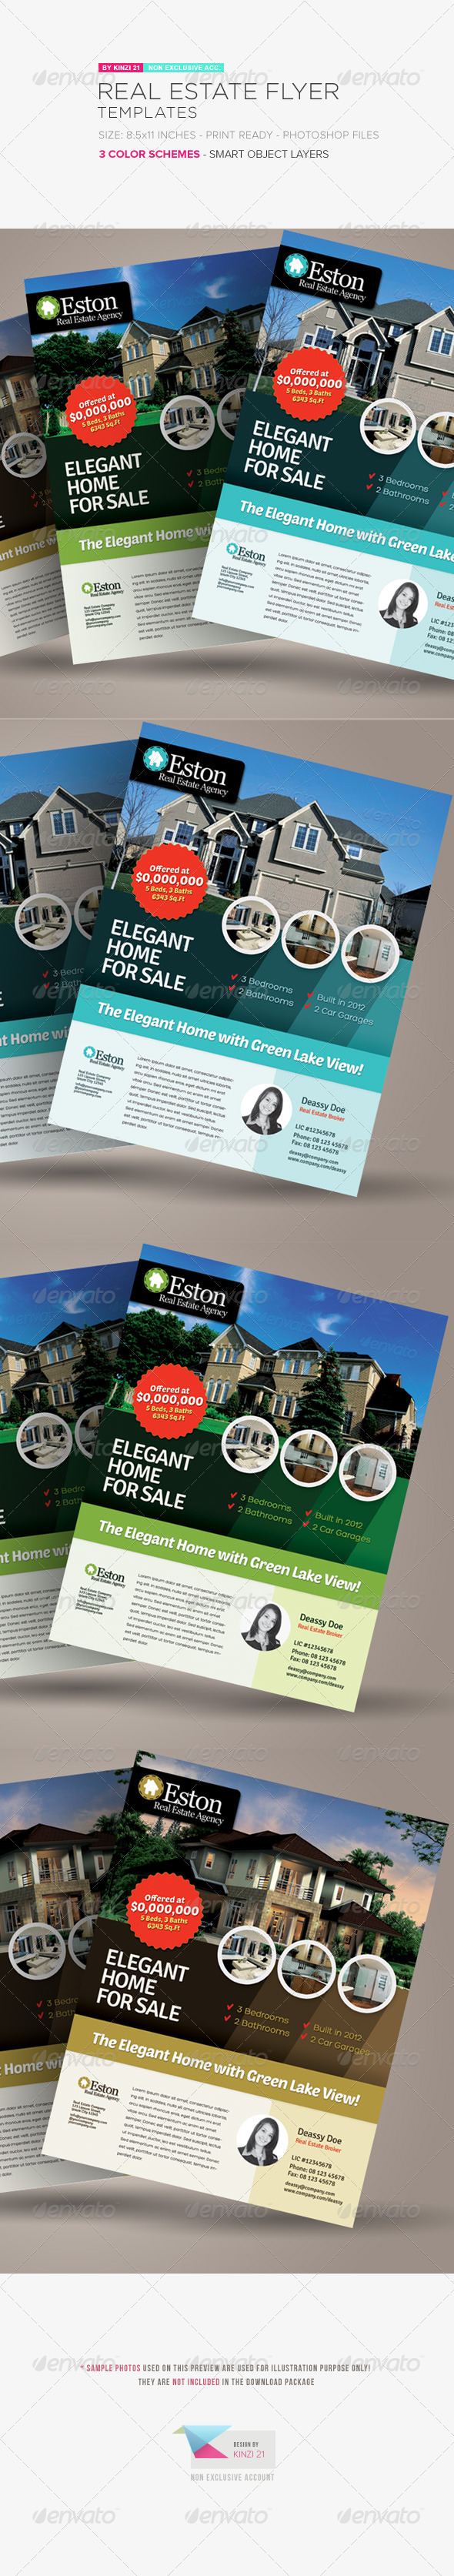 GraphicRiver Real Estate Flyer Templates 6204347